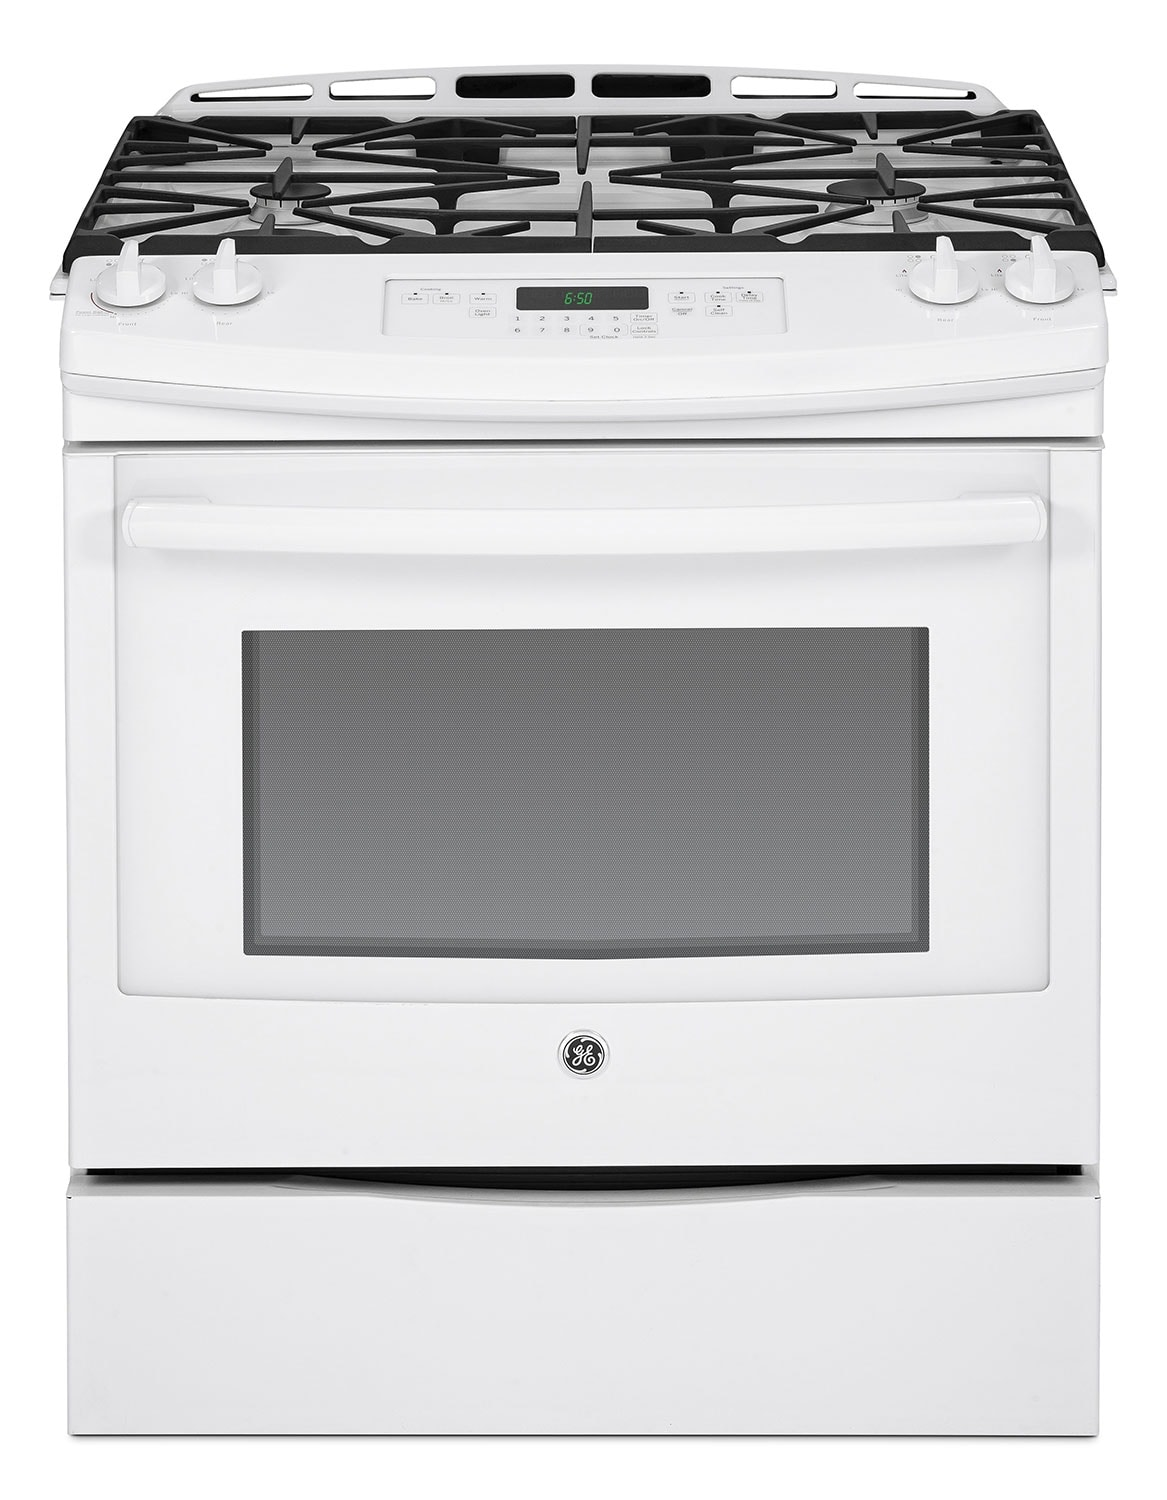 Cooking Products - GE 5.6 Cu. Ft. Slide-In Gas Range - White